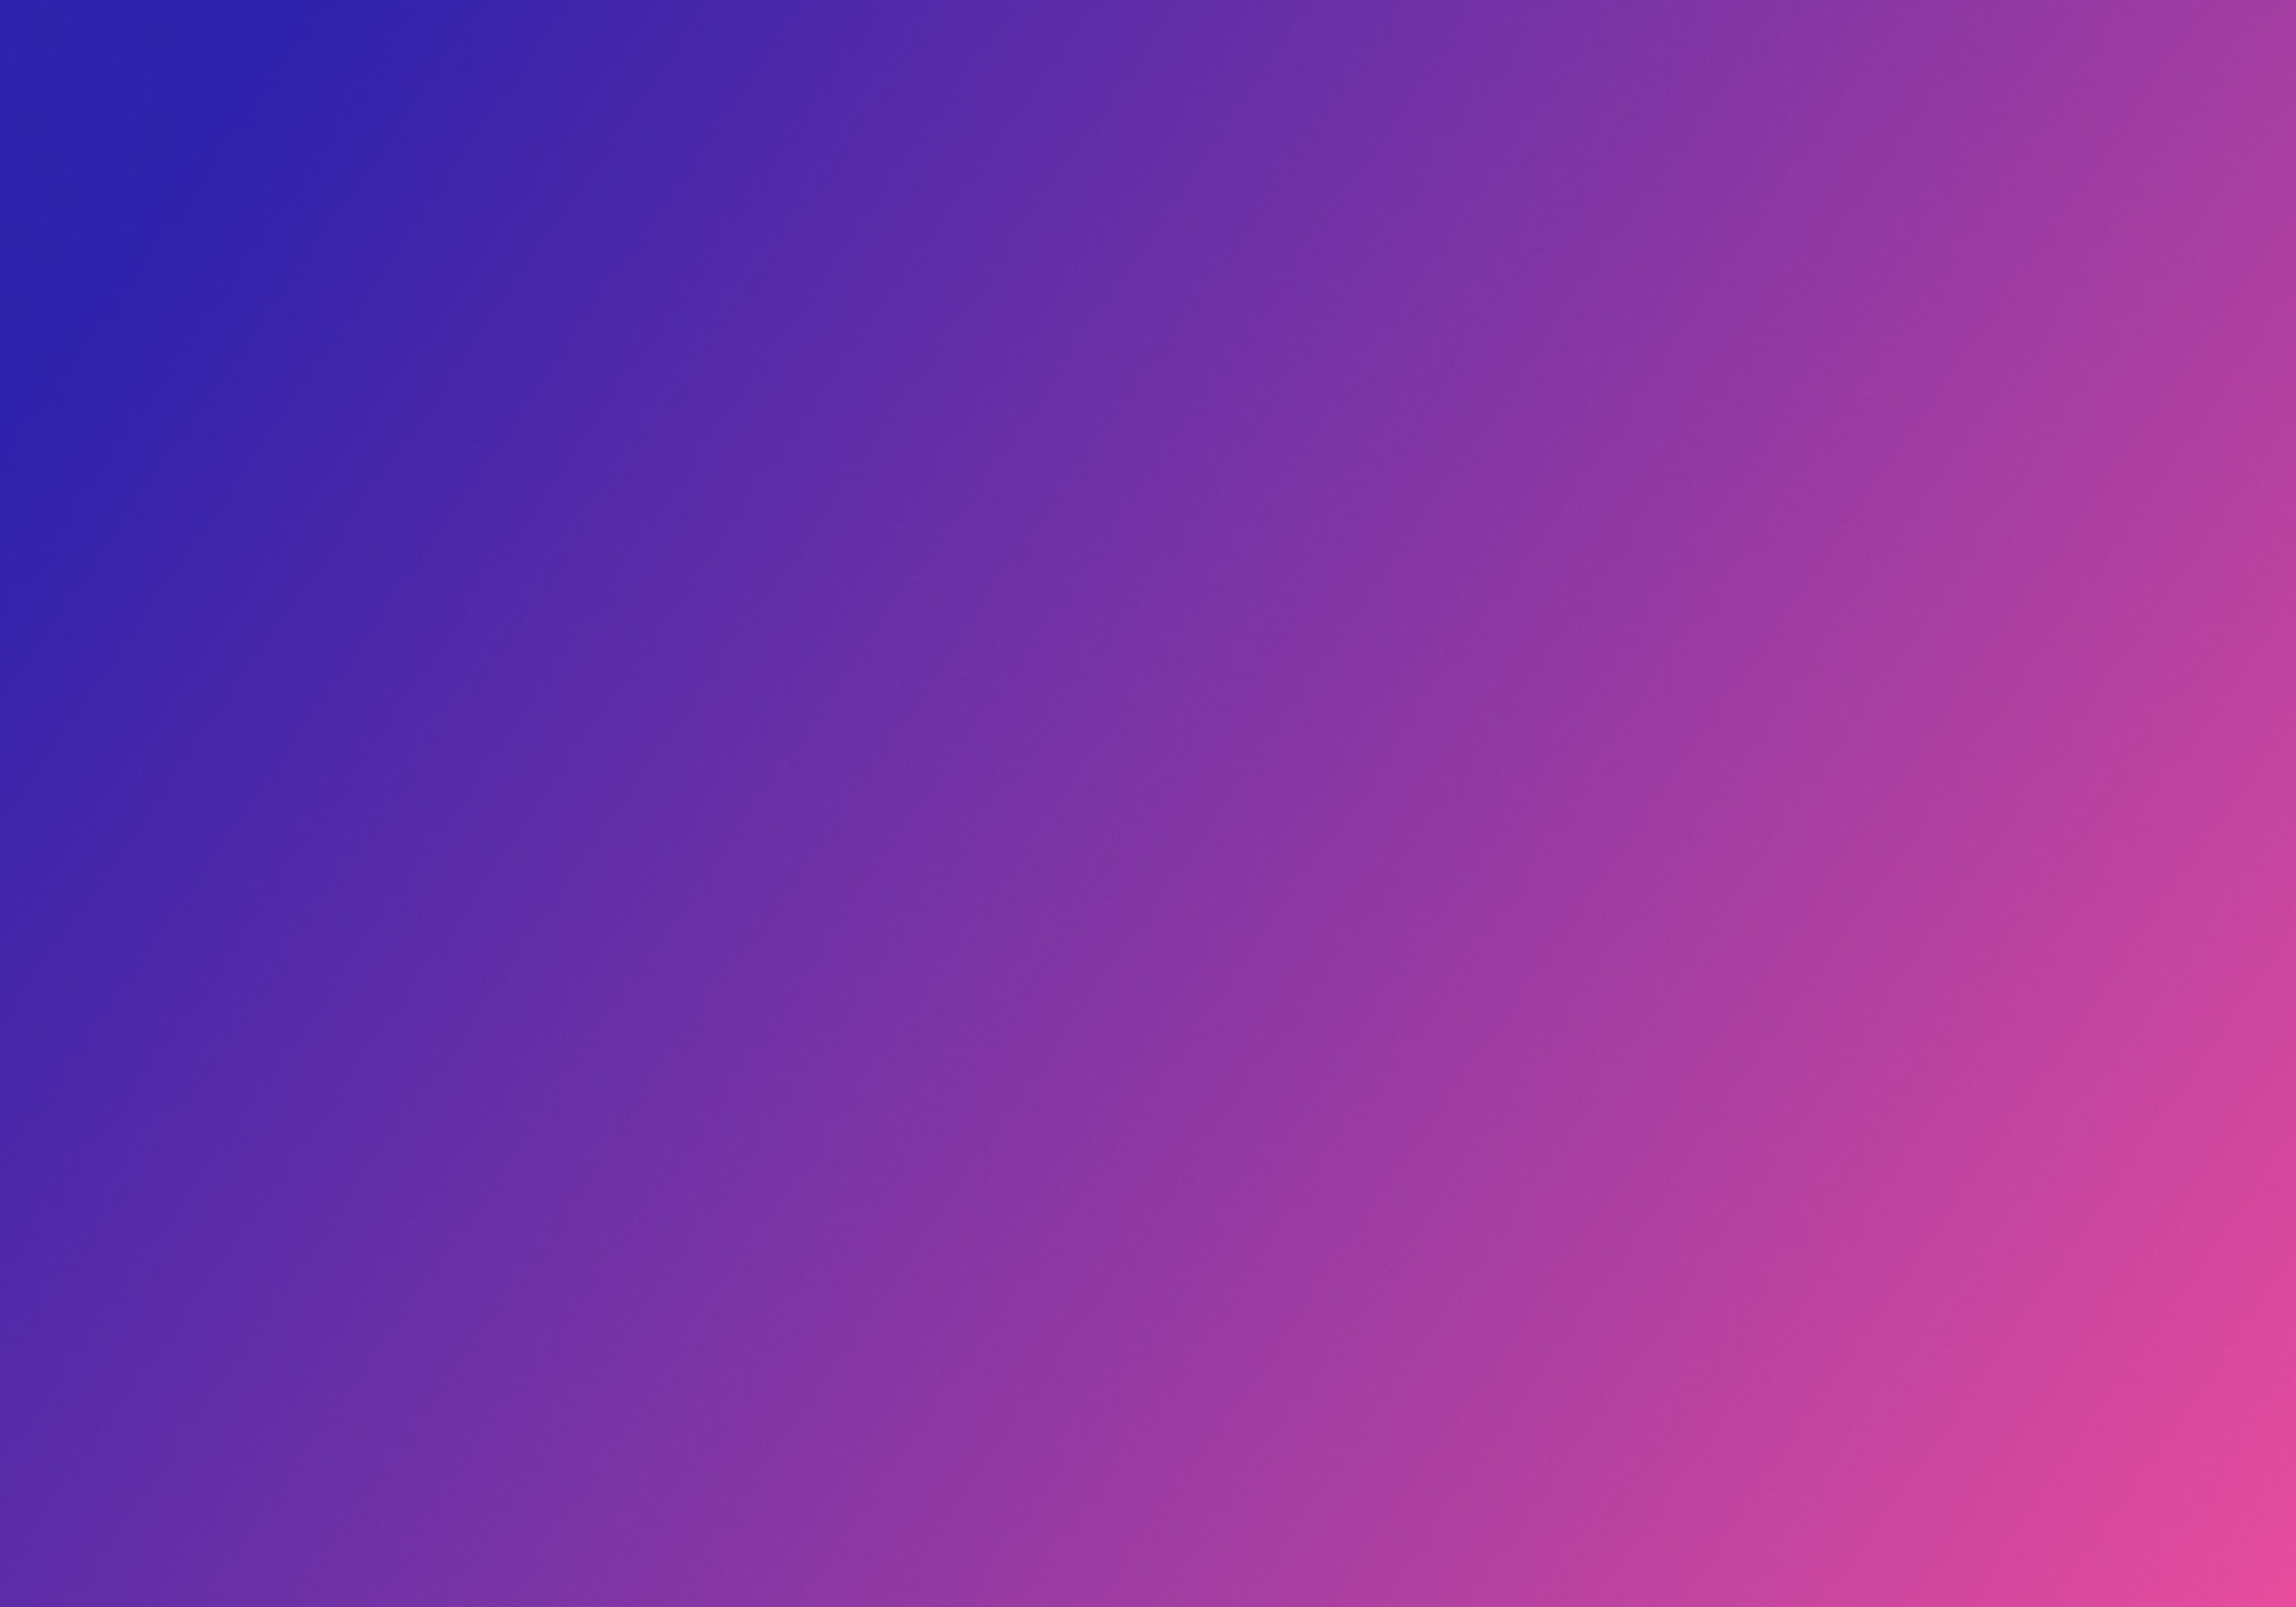 Blue to purple gradient